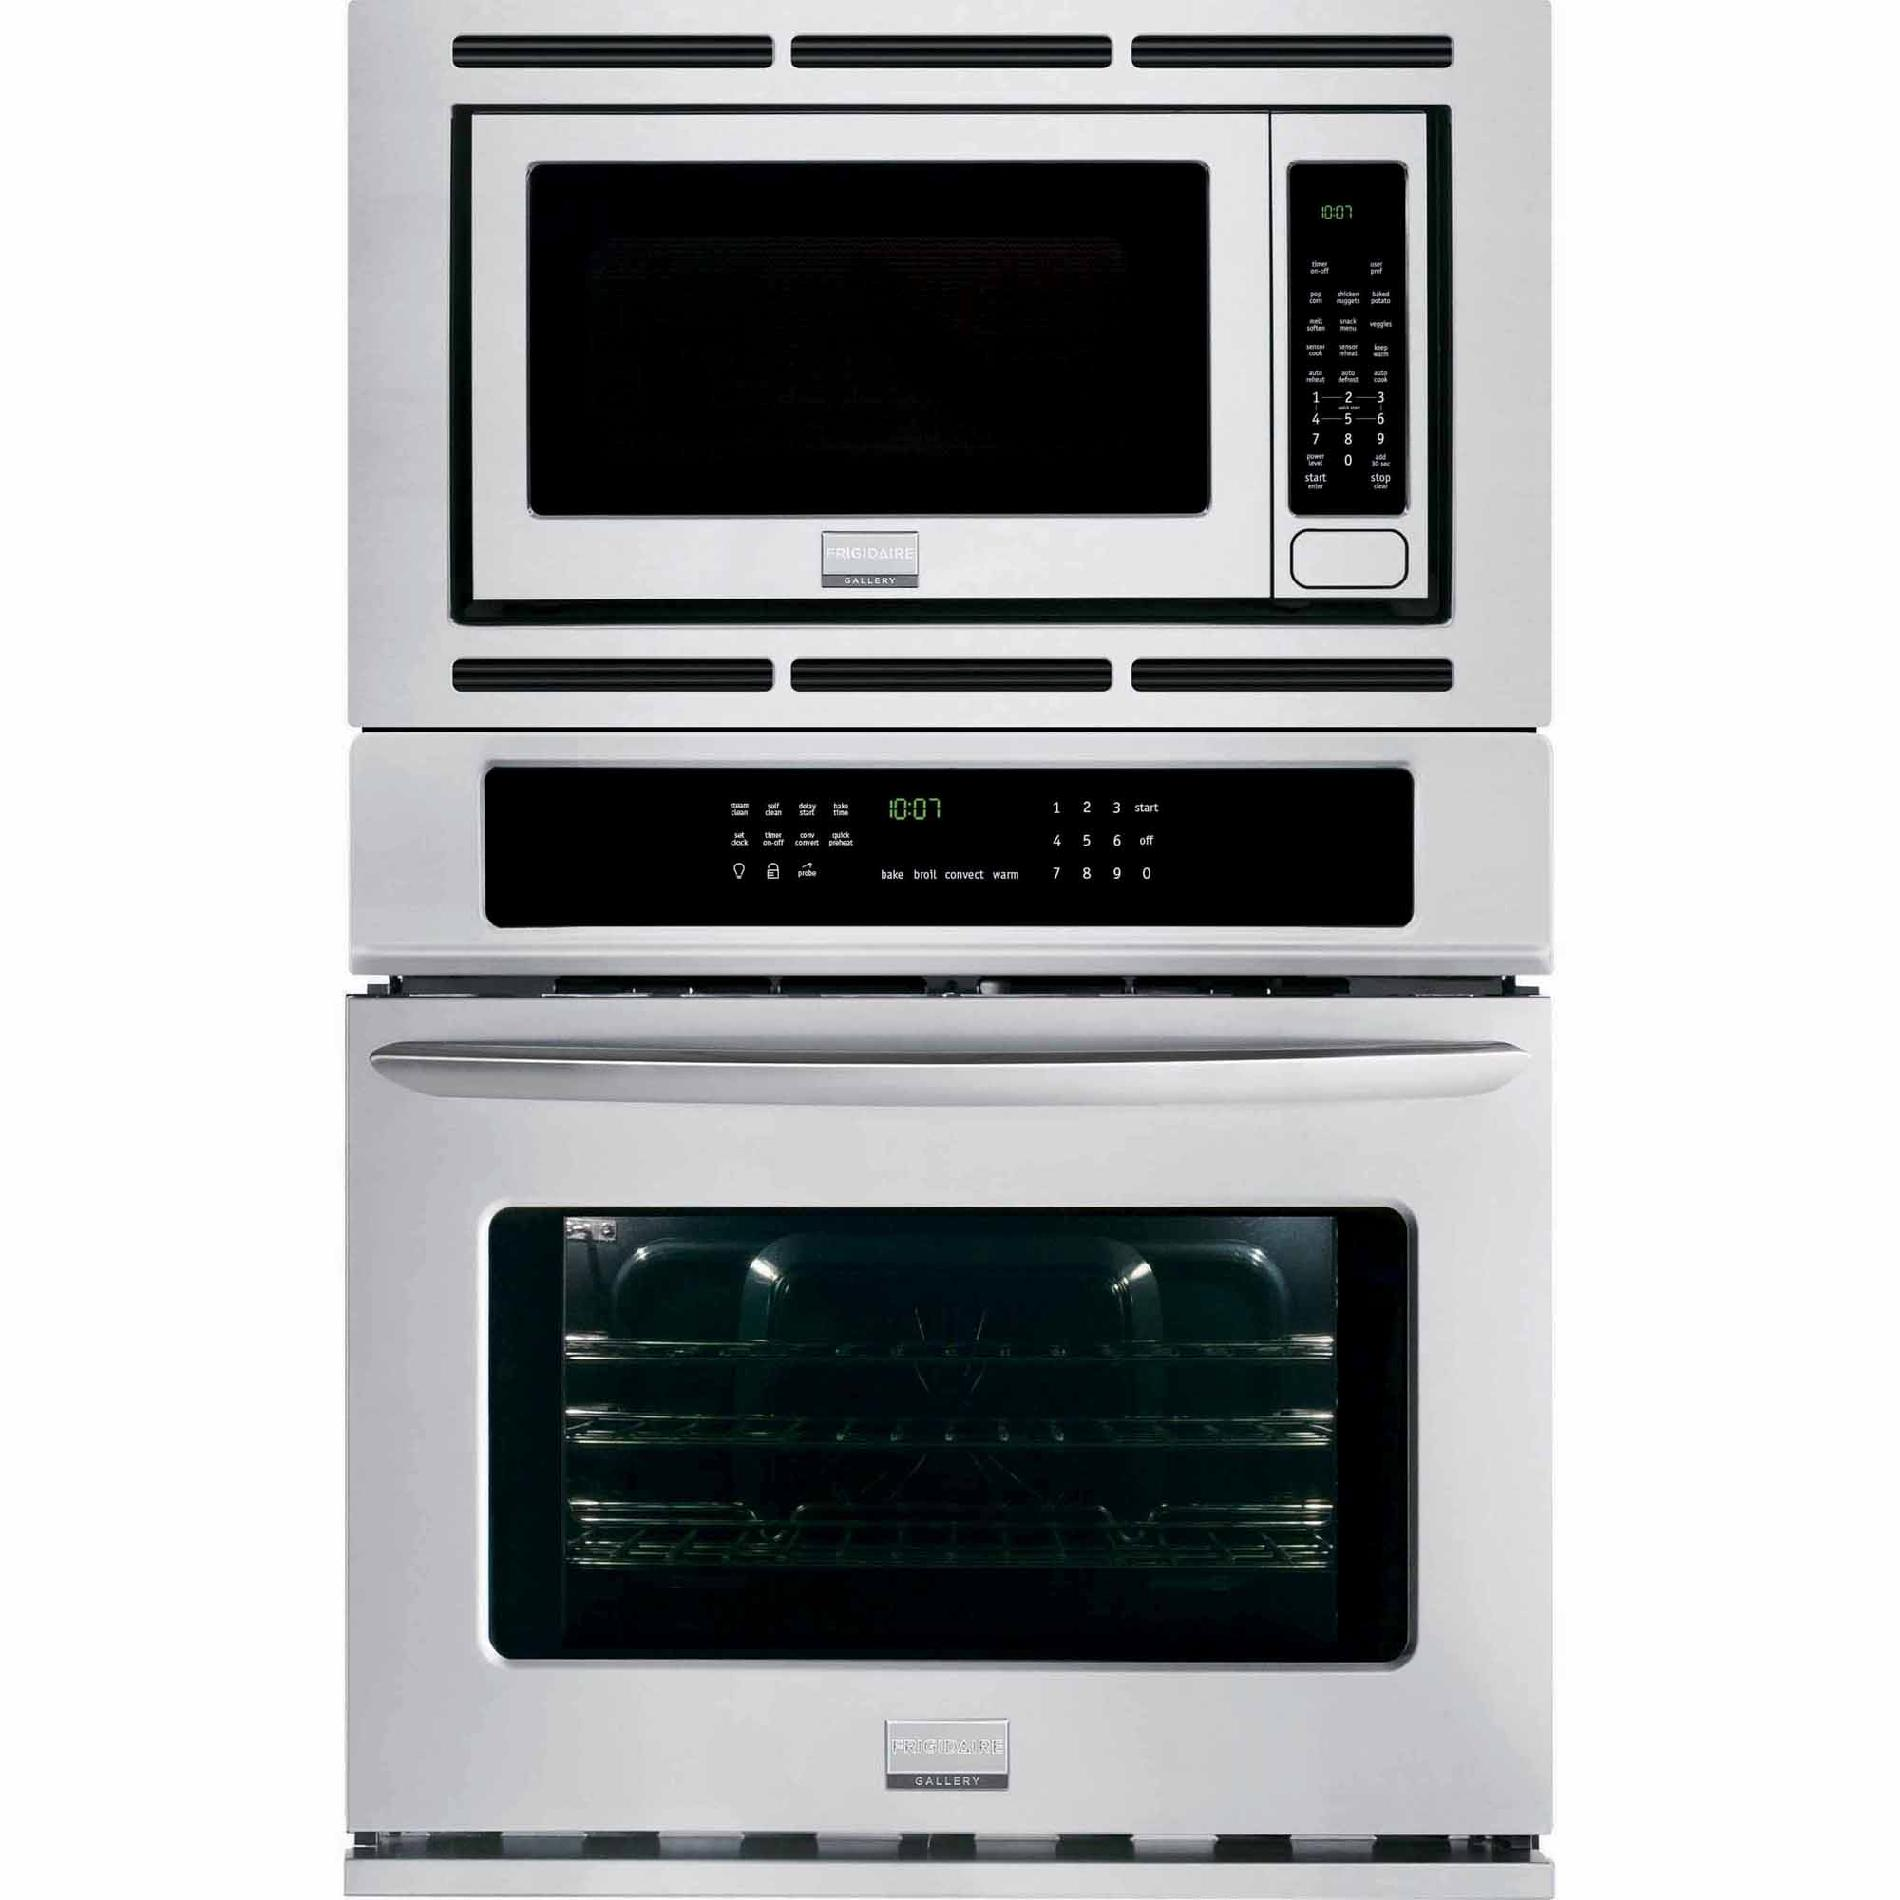 oven microwave combination